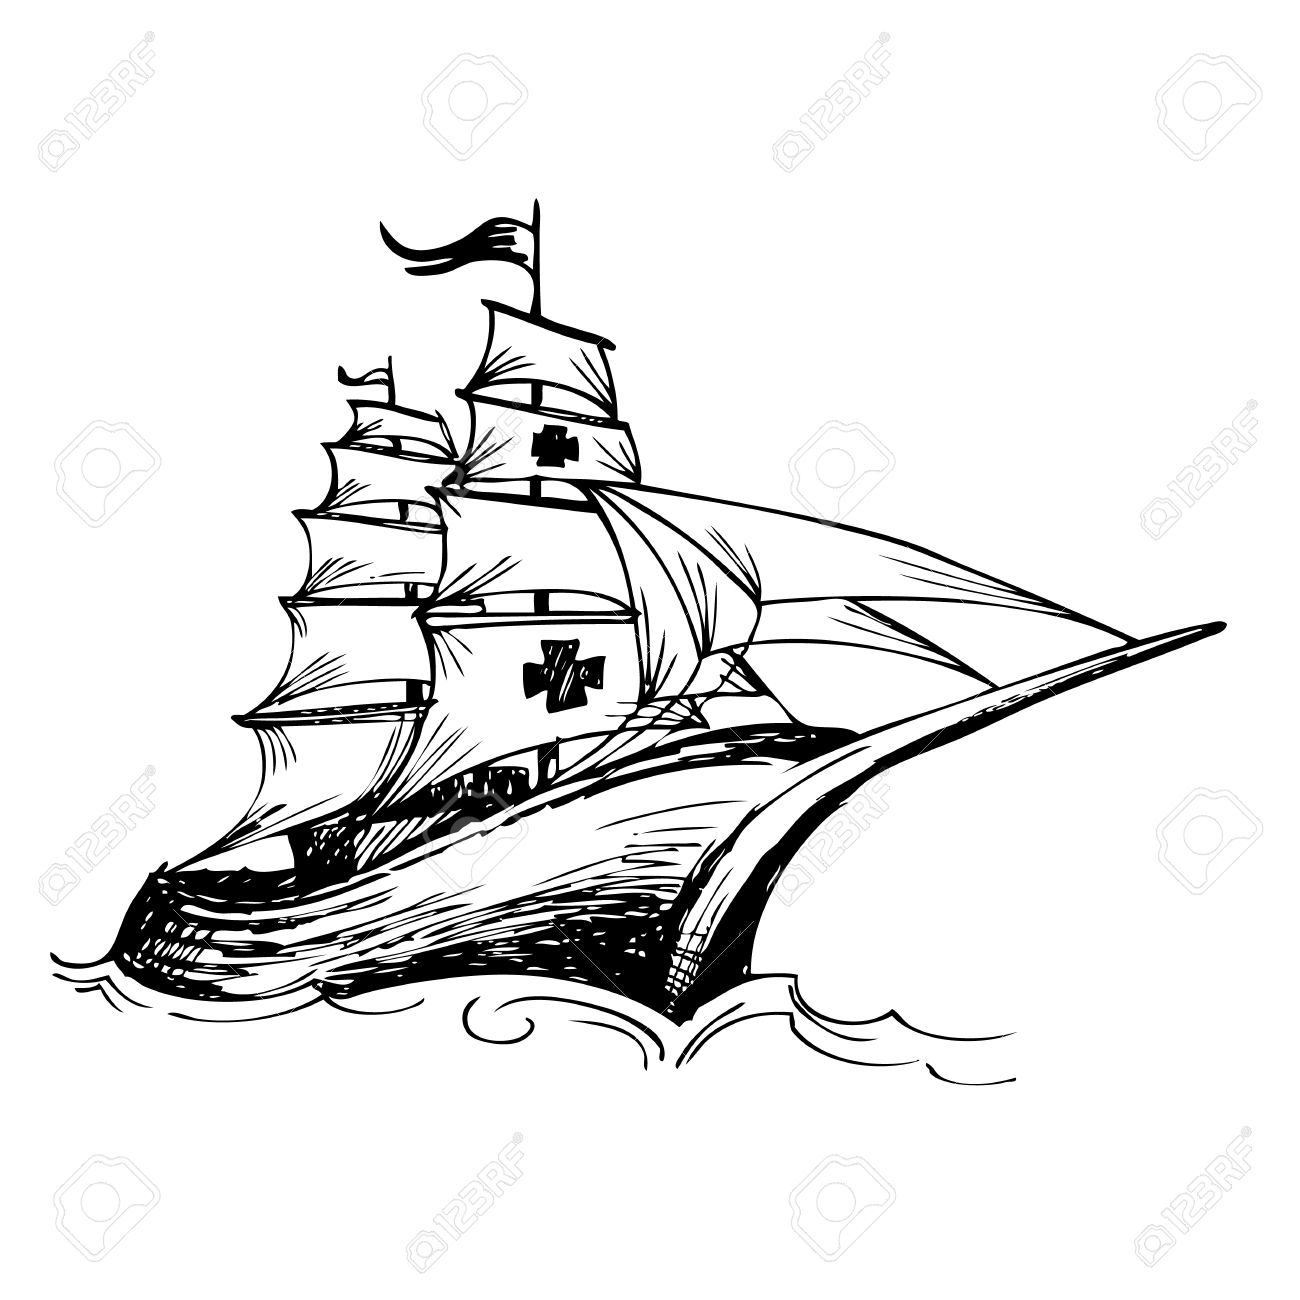 hight resolution of 1300x1300 columbus ship hand drawn by pencil made for columbus day royalty